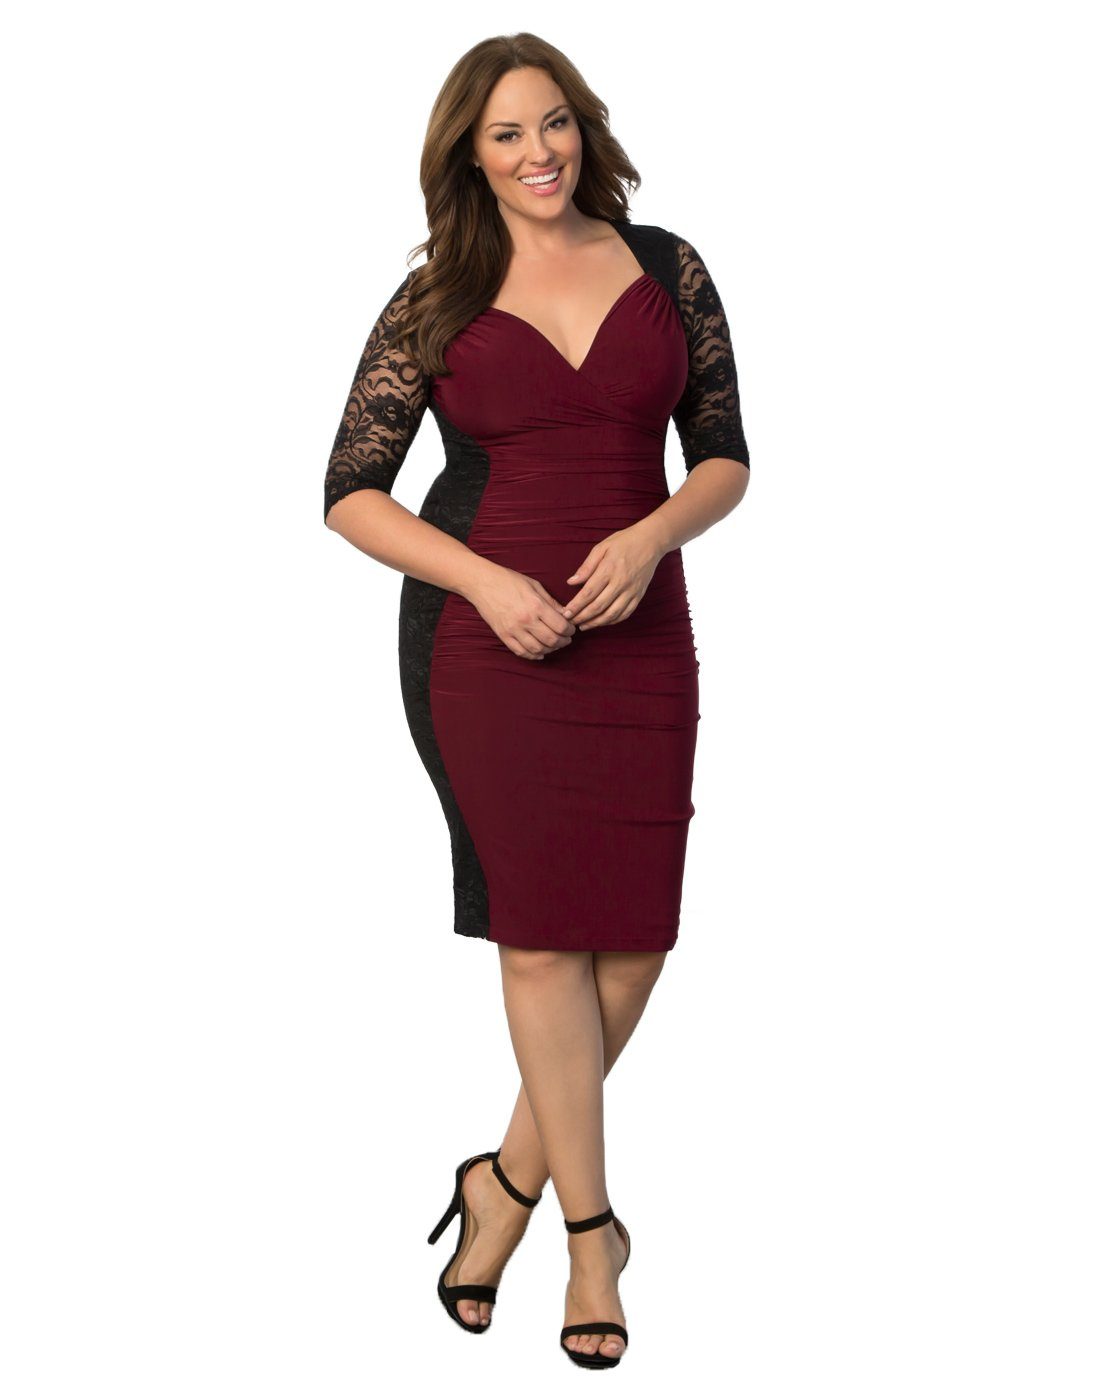 Kiyonna Women's Plus Size Valentina Illusion Dress 0X Black/Burgundy by Kiyonna Clothing